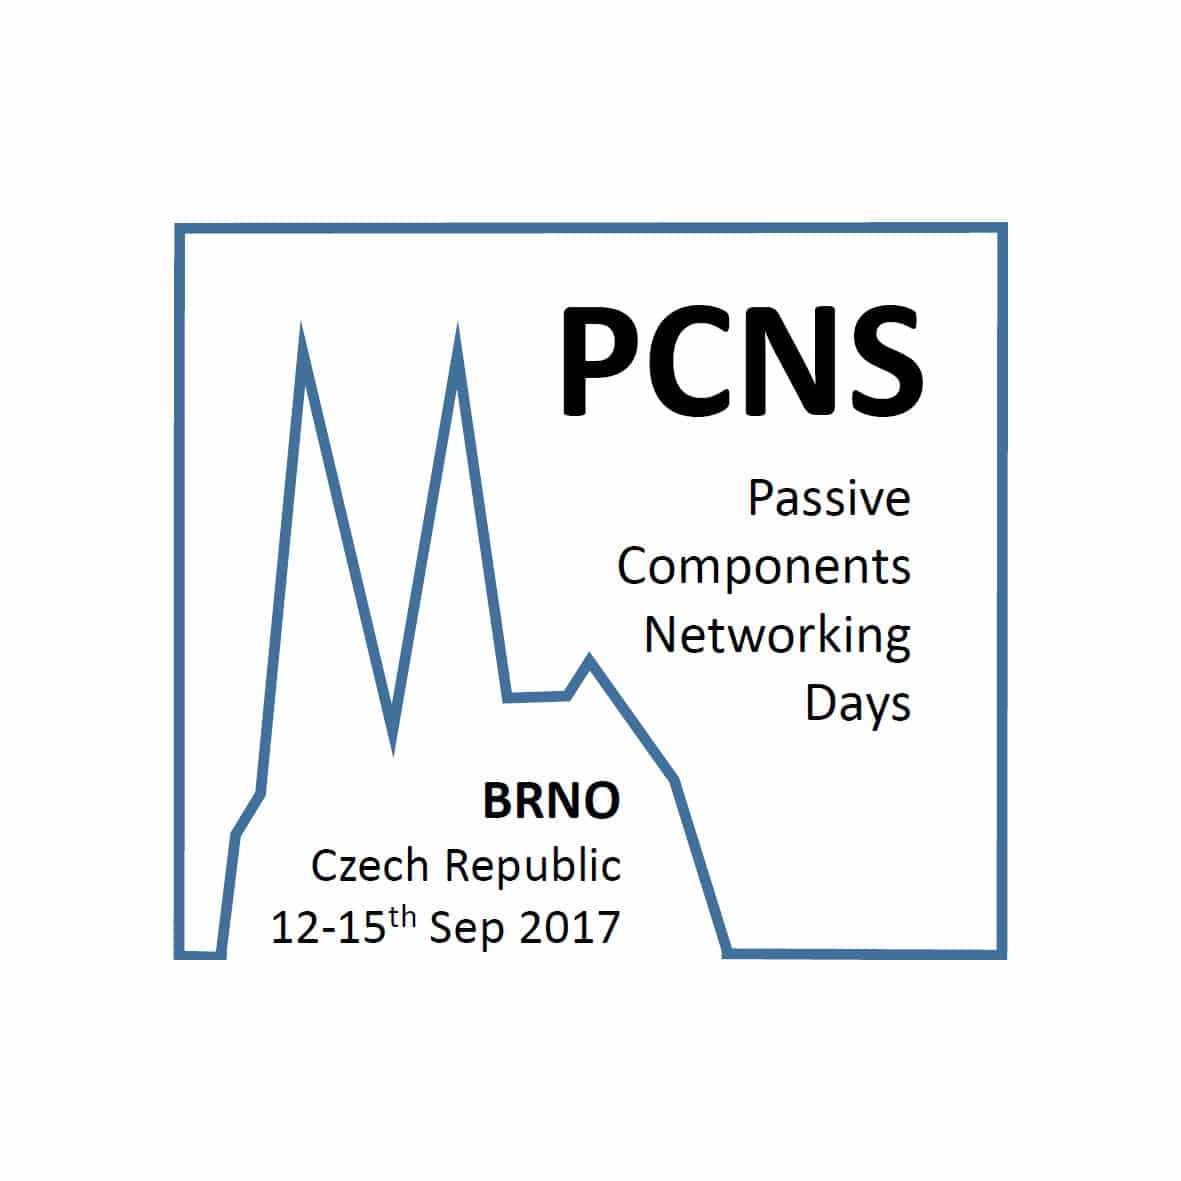 PCNS Passive Components Networking Days will offer CRL Seminars